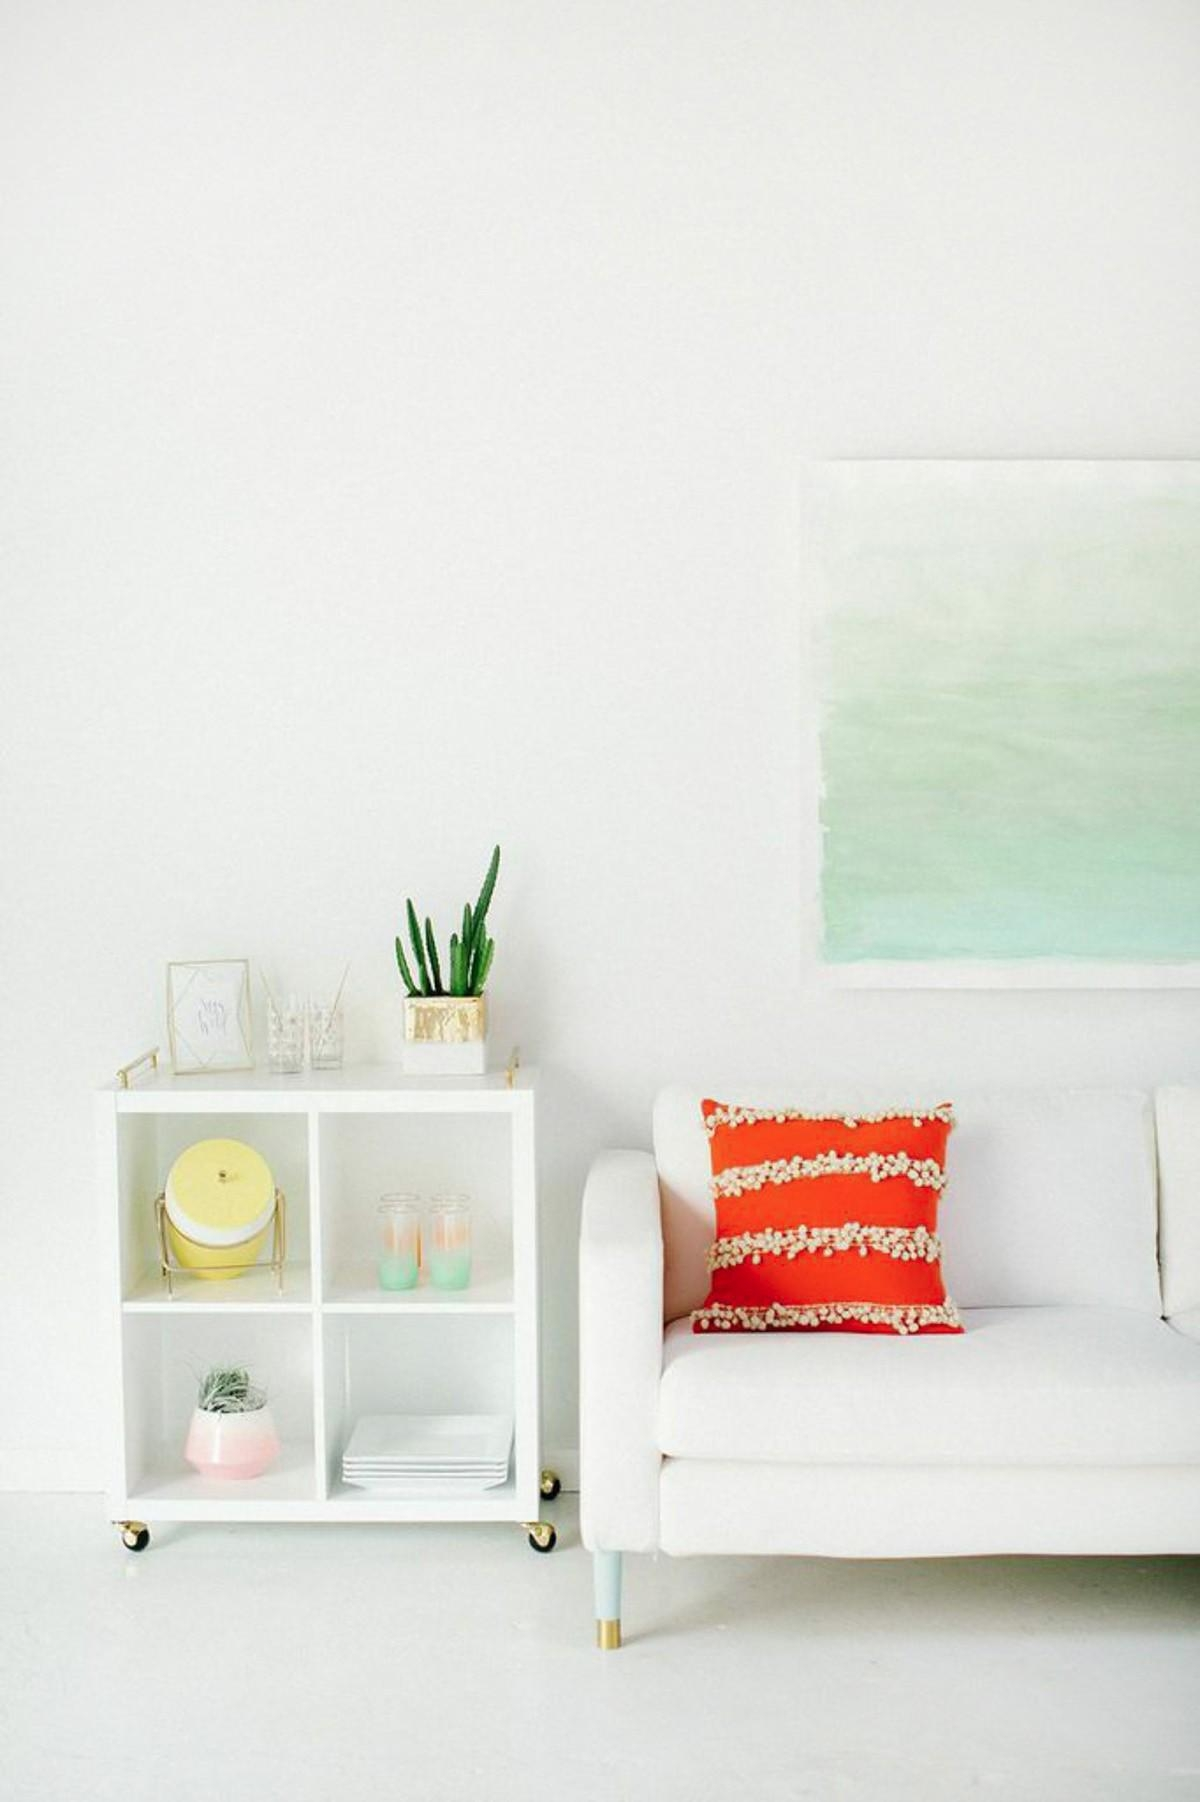 Diy Watercolor Wall Art | Sugar & Cloth Regarding Diy Watercolor Wall Art (Image 9 of 20)